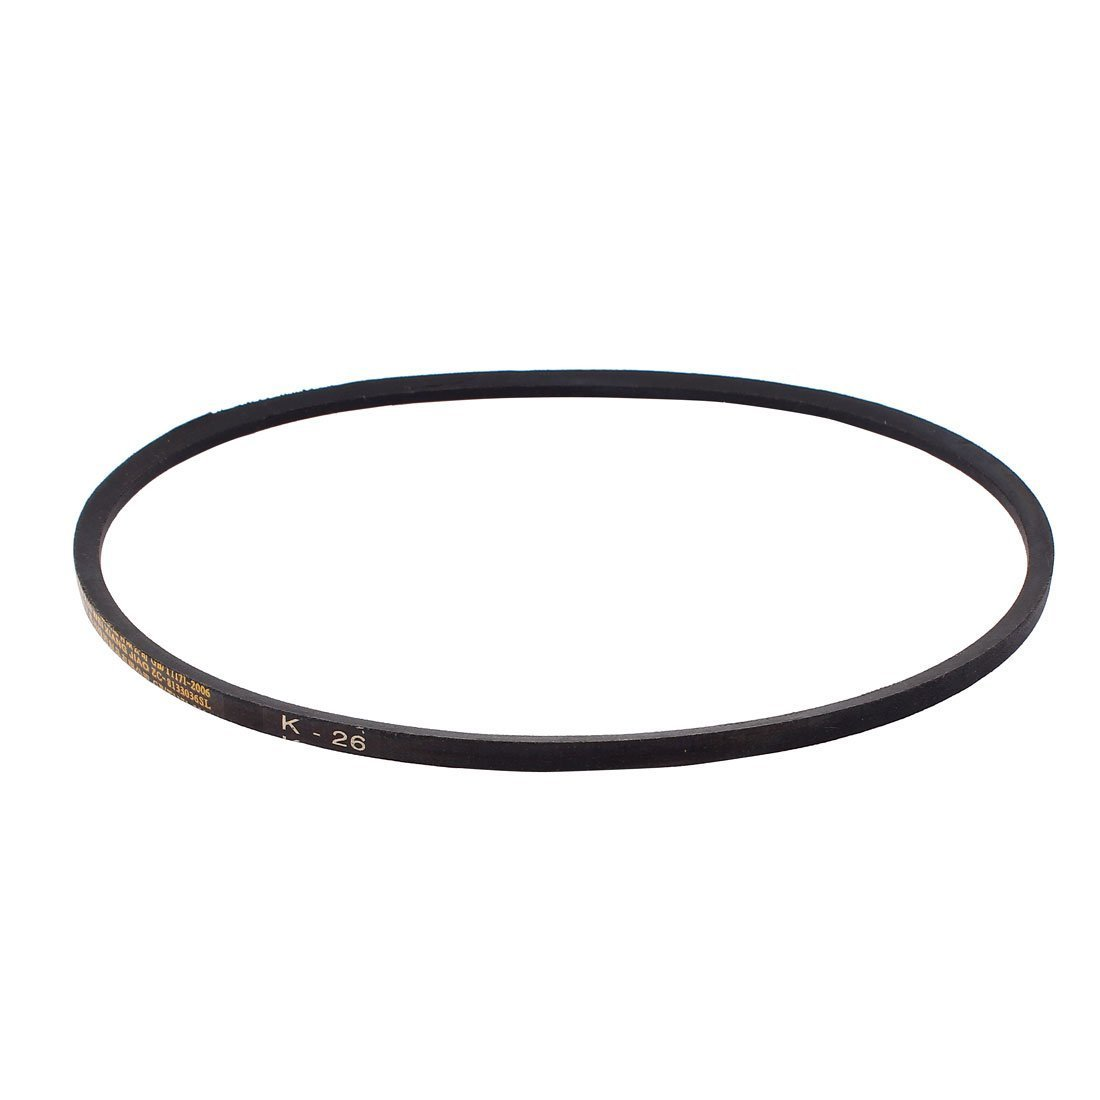 Rubber K Type K26 Machine Transmission Drive V Belt Black uxcell a15052100ux0270